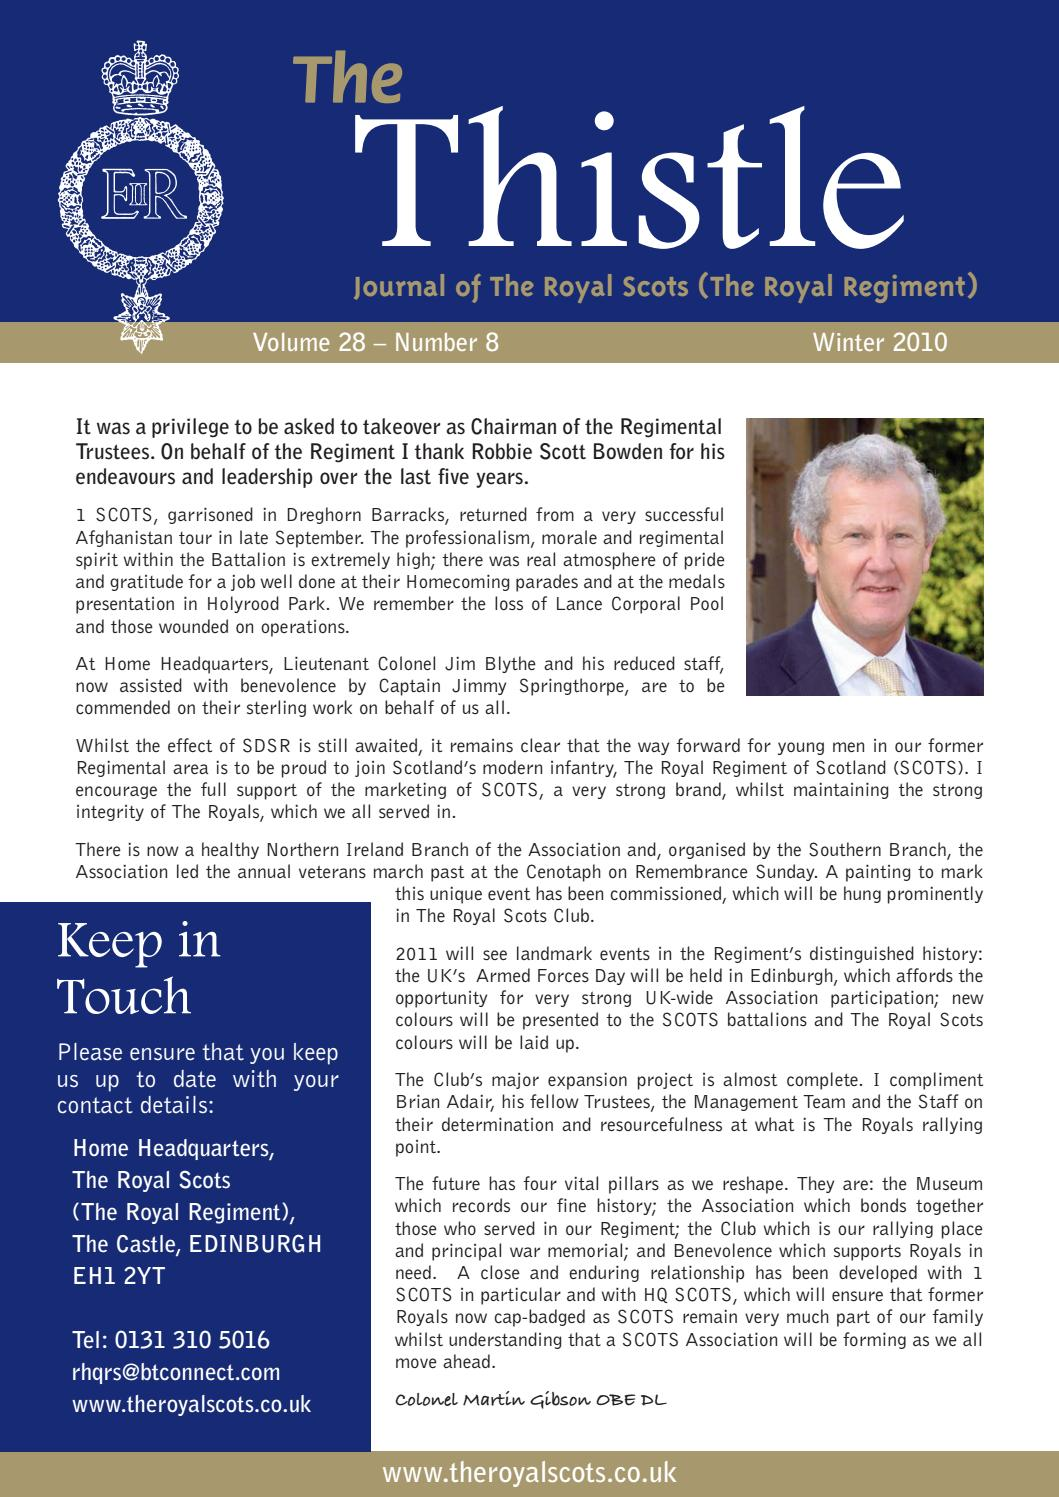 The thistle vol 28 no 8 winter 2010 by the royal scots issuu kristyandbryce Choice Image